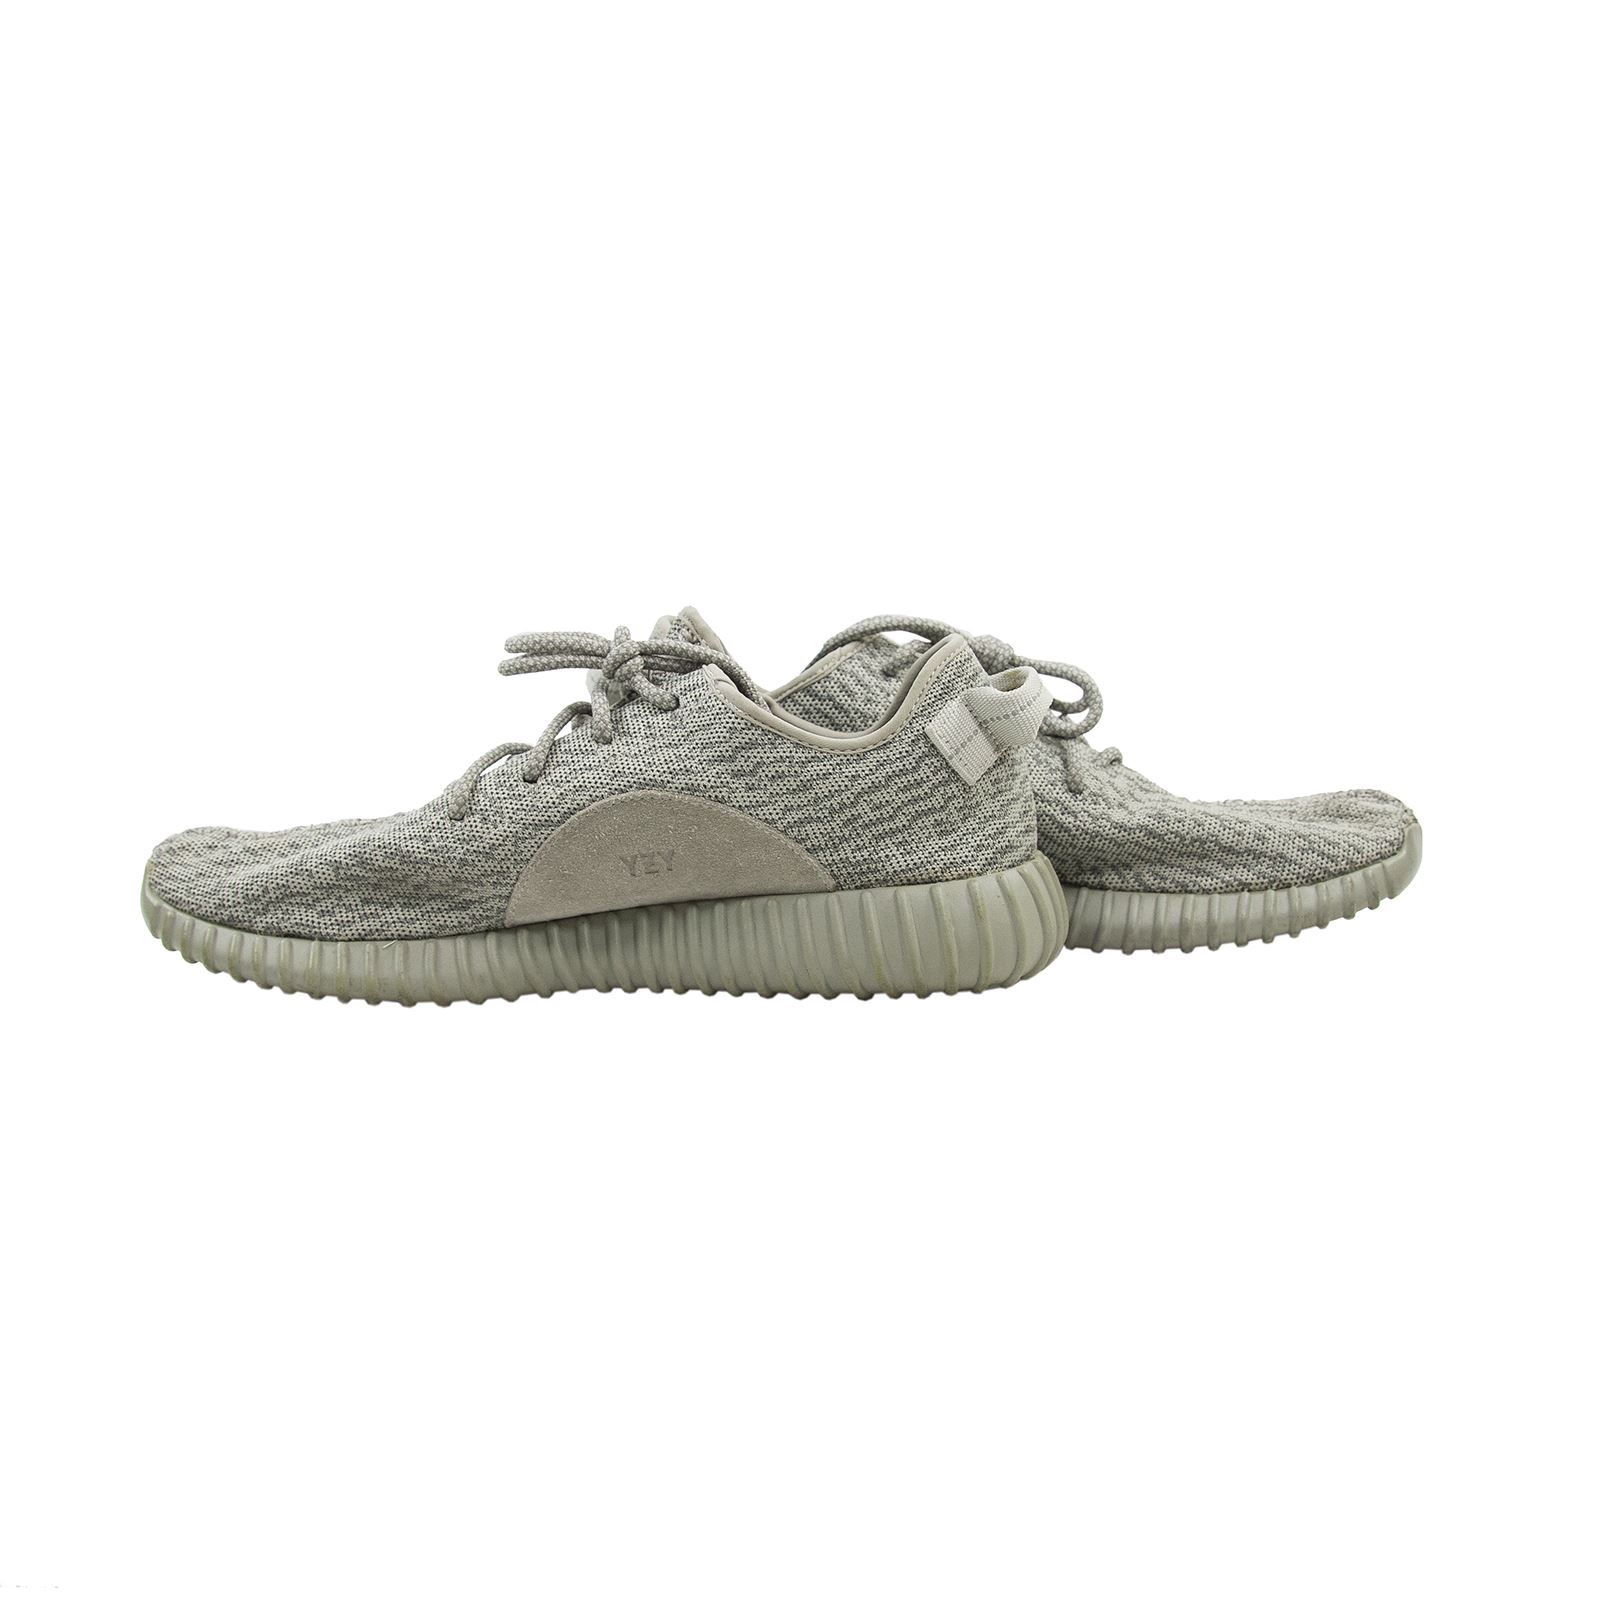 75d90391084324 Adidas Yeezy Boost 350 Moonrock Grey AQ2660 Agagra Kanye West Sneakers Shoes  12